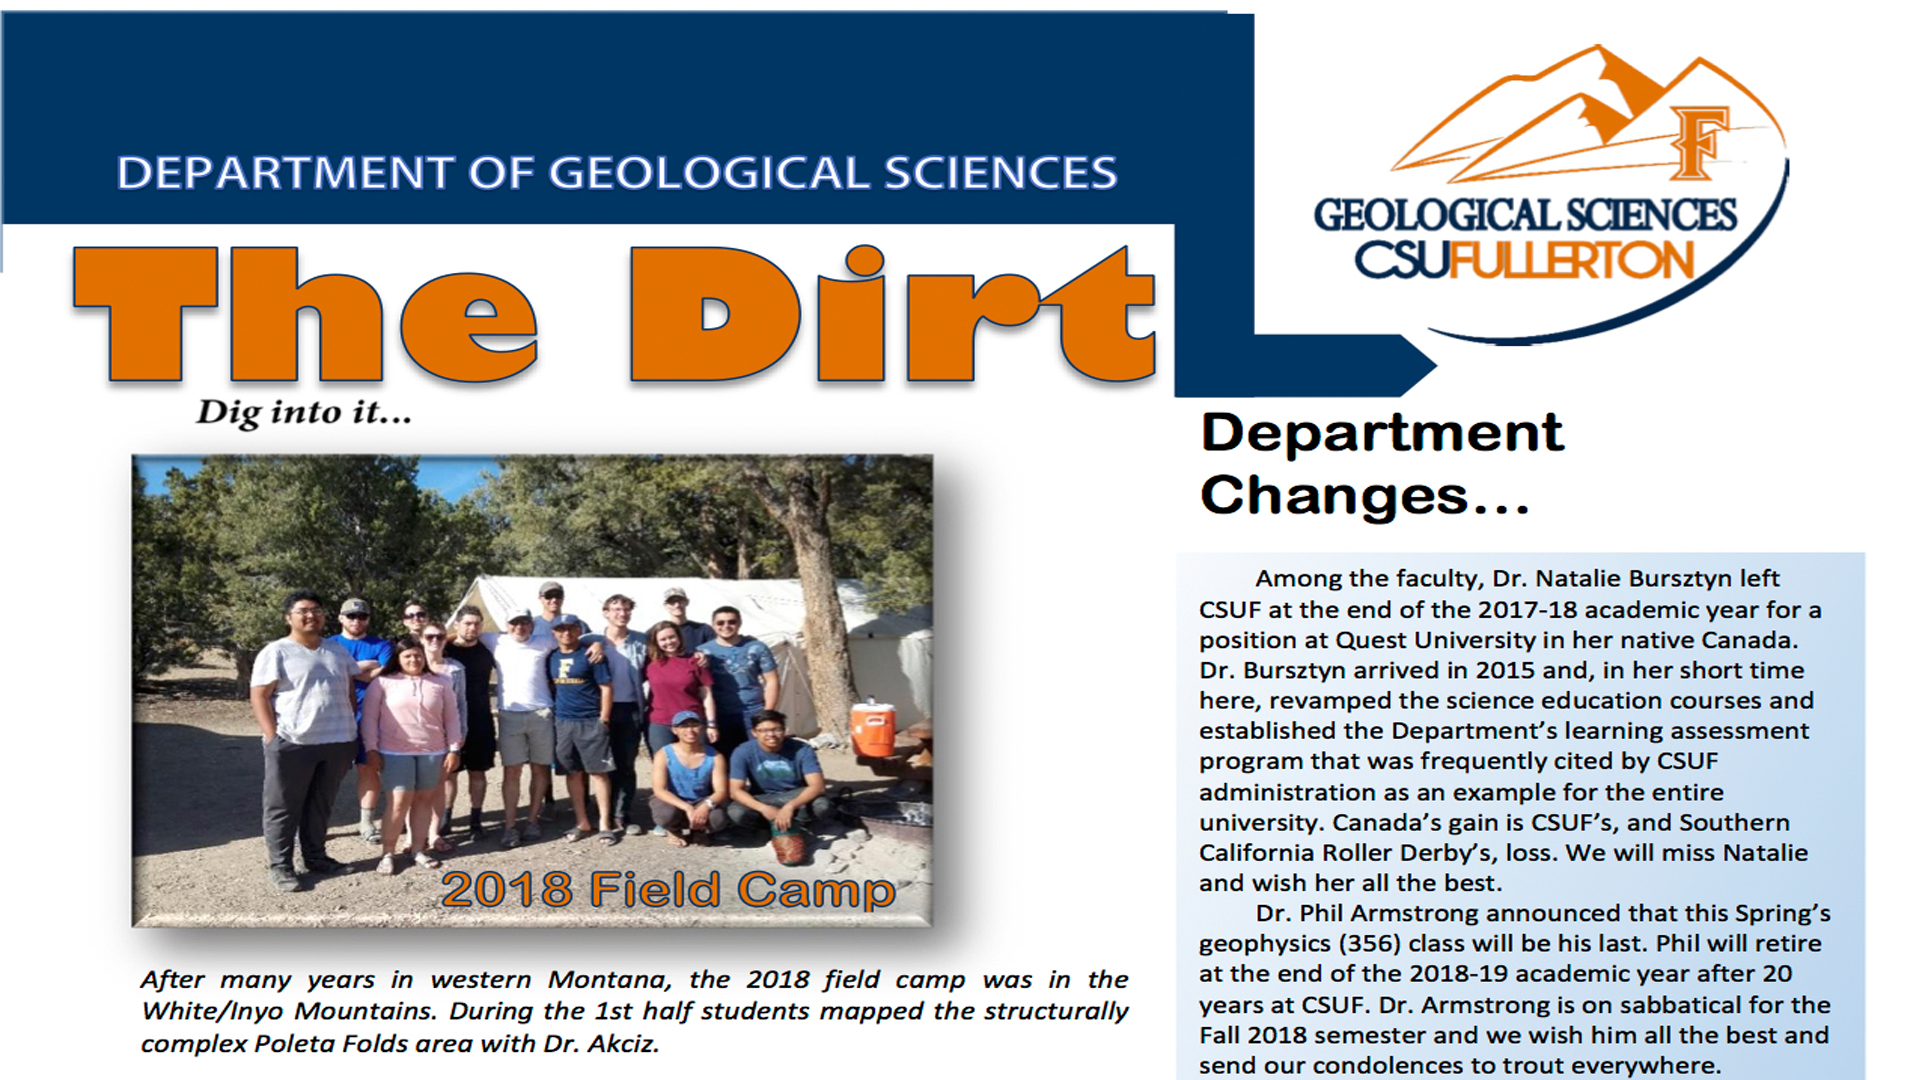 hight resolution of Home of Geological Sciences C.S.U.F. - Geological Sciences   CSUF